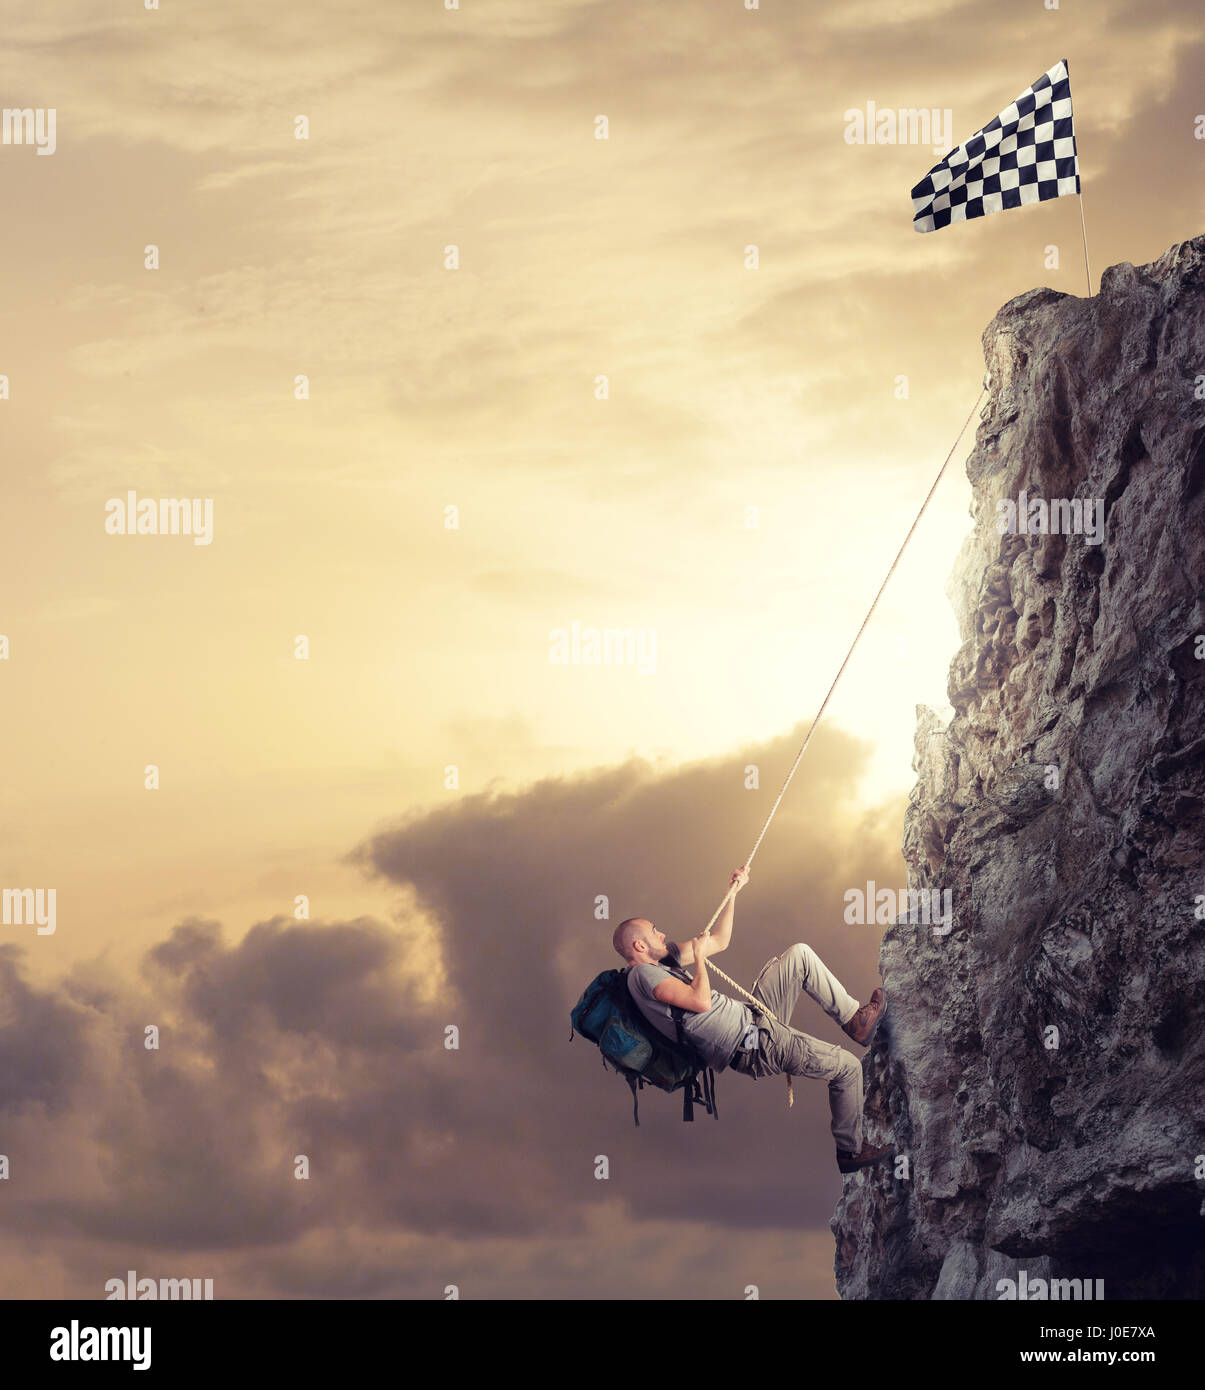 Businessman climb a mountain to get the flag. Achievement business goal and difficult career concept - Stock Image